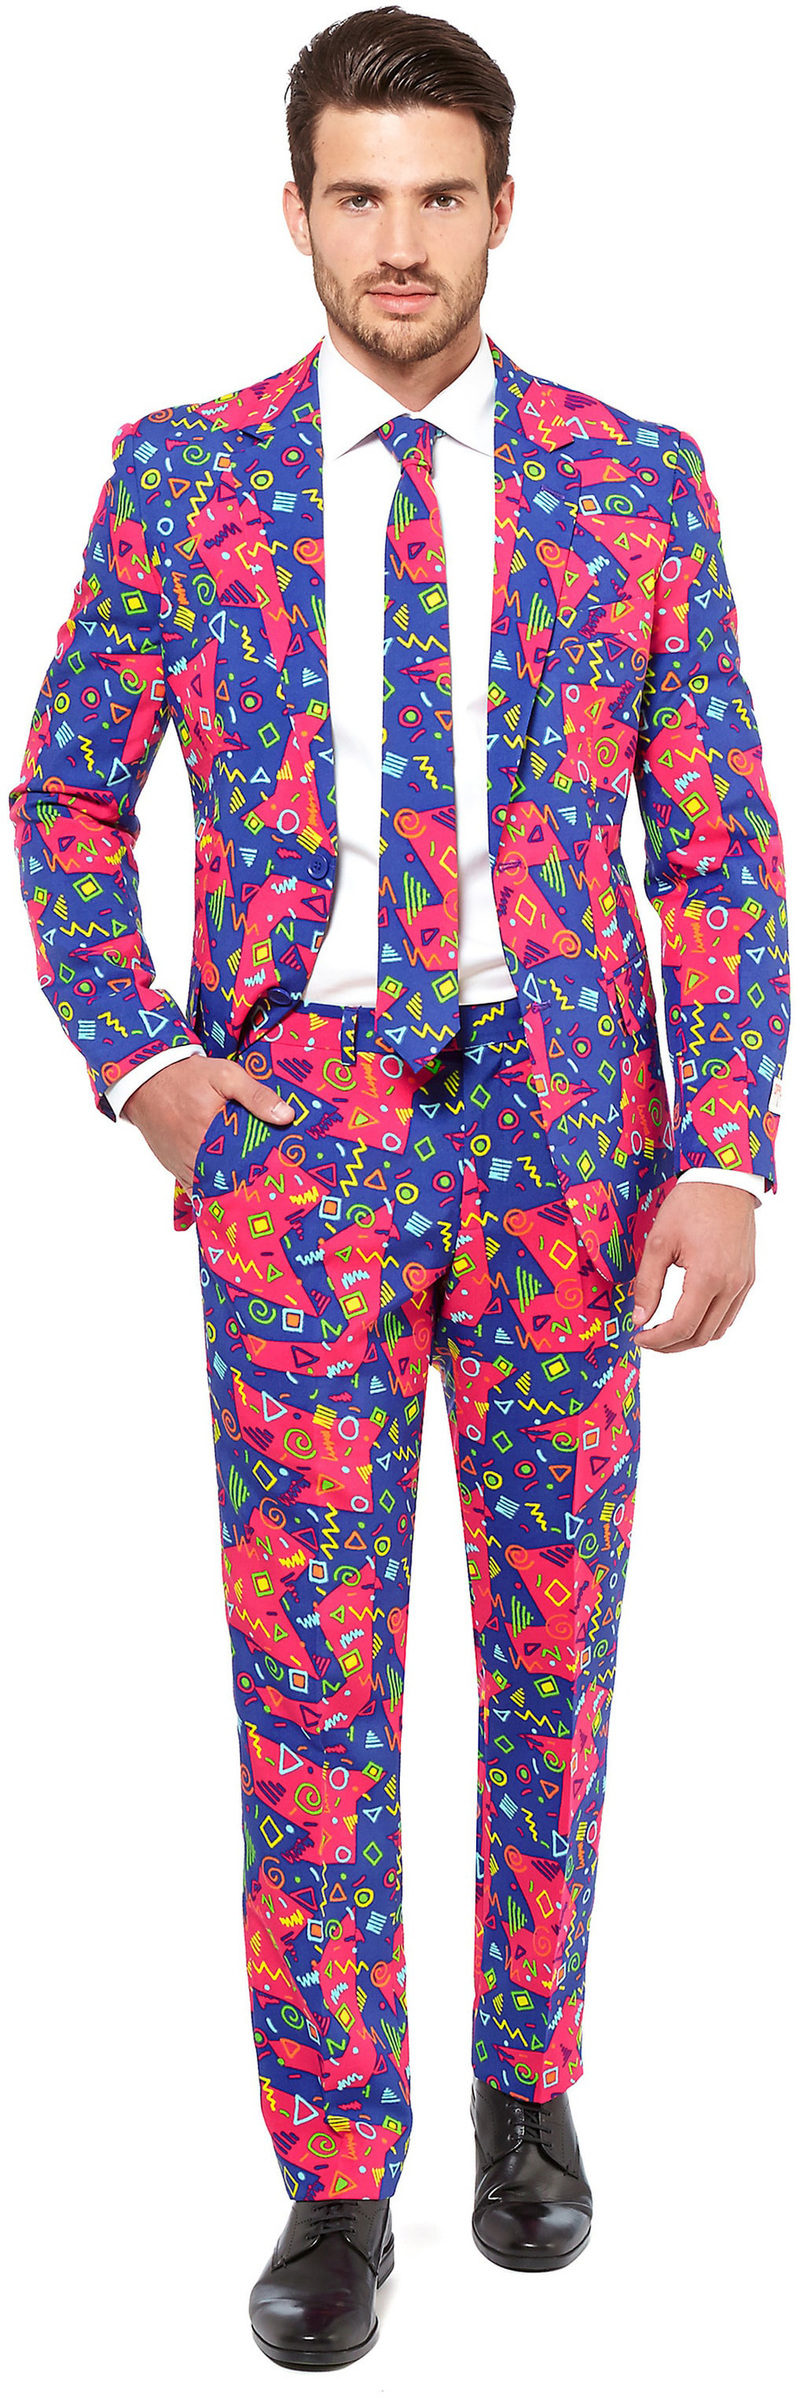 OppoSuits The Fresh Prince Suit photo 0